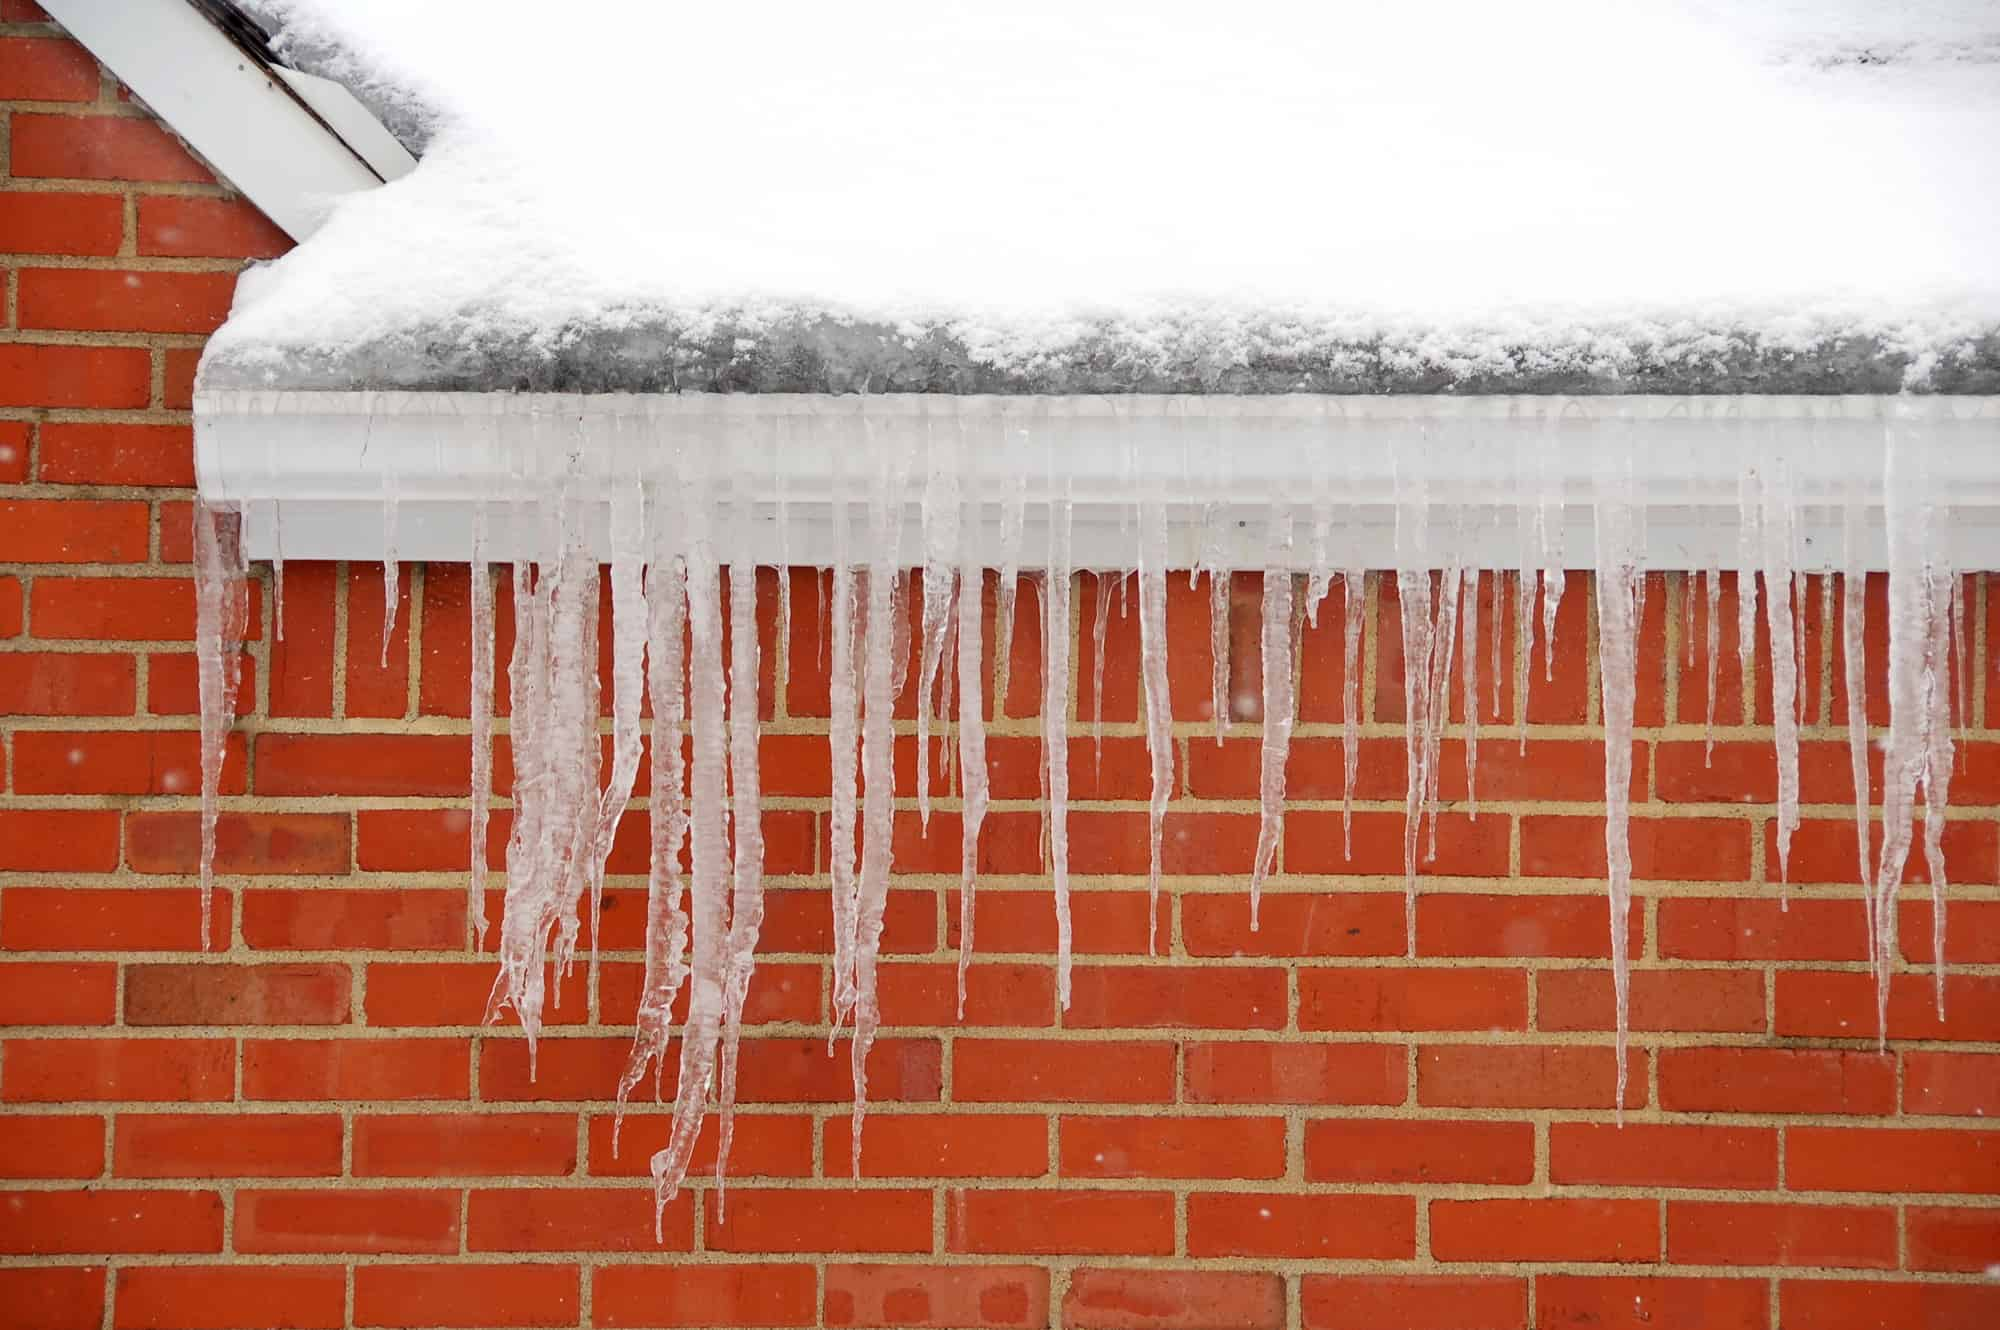 icicles hanging from gutters